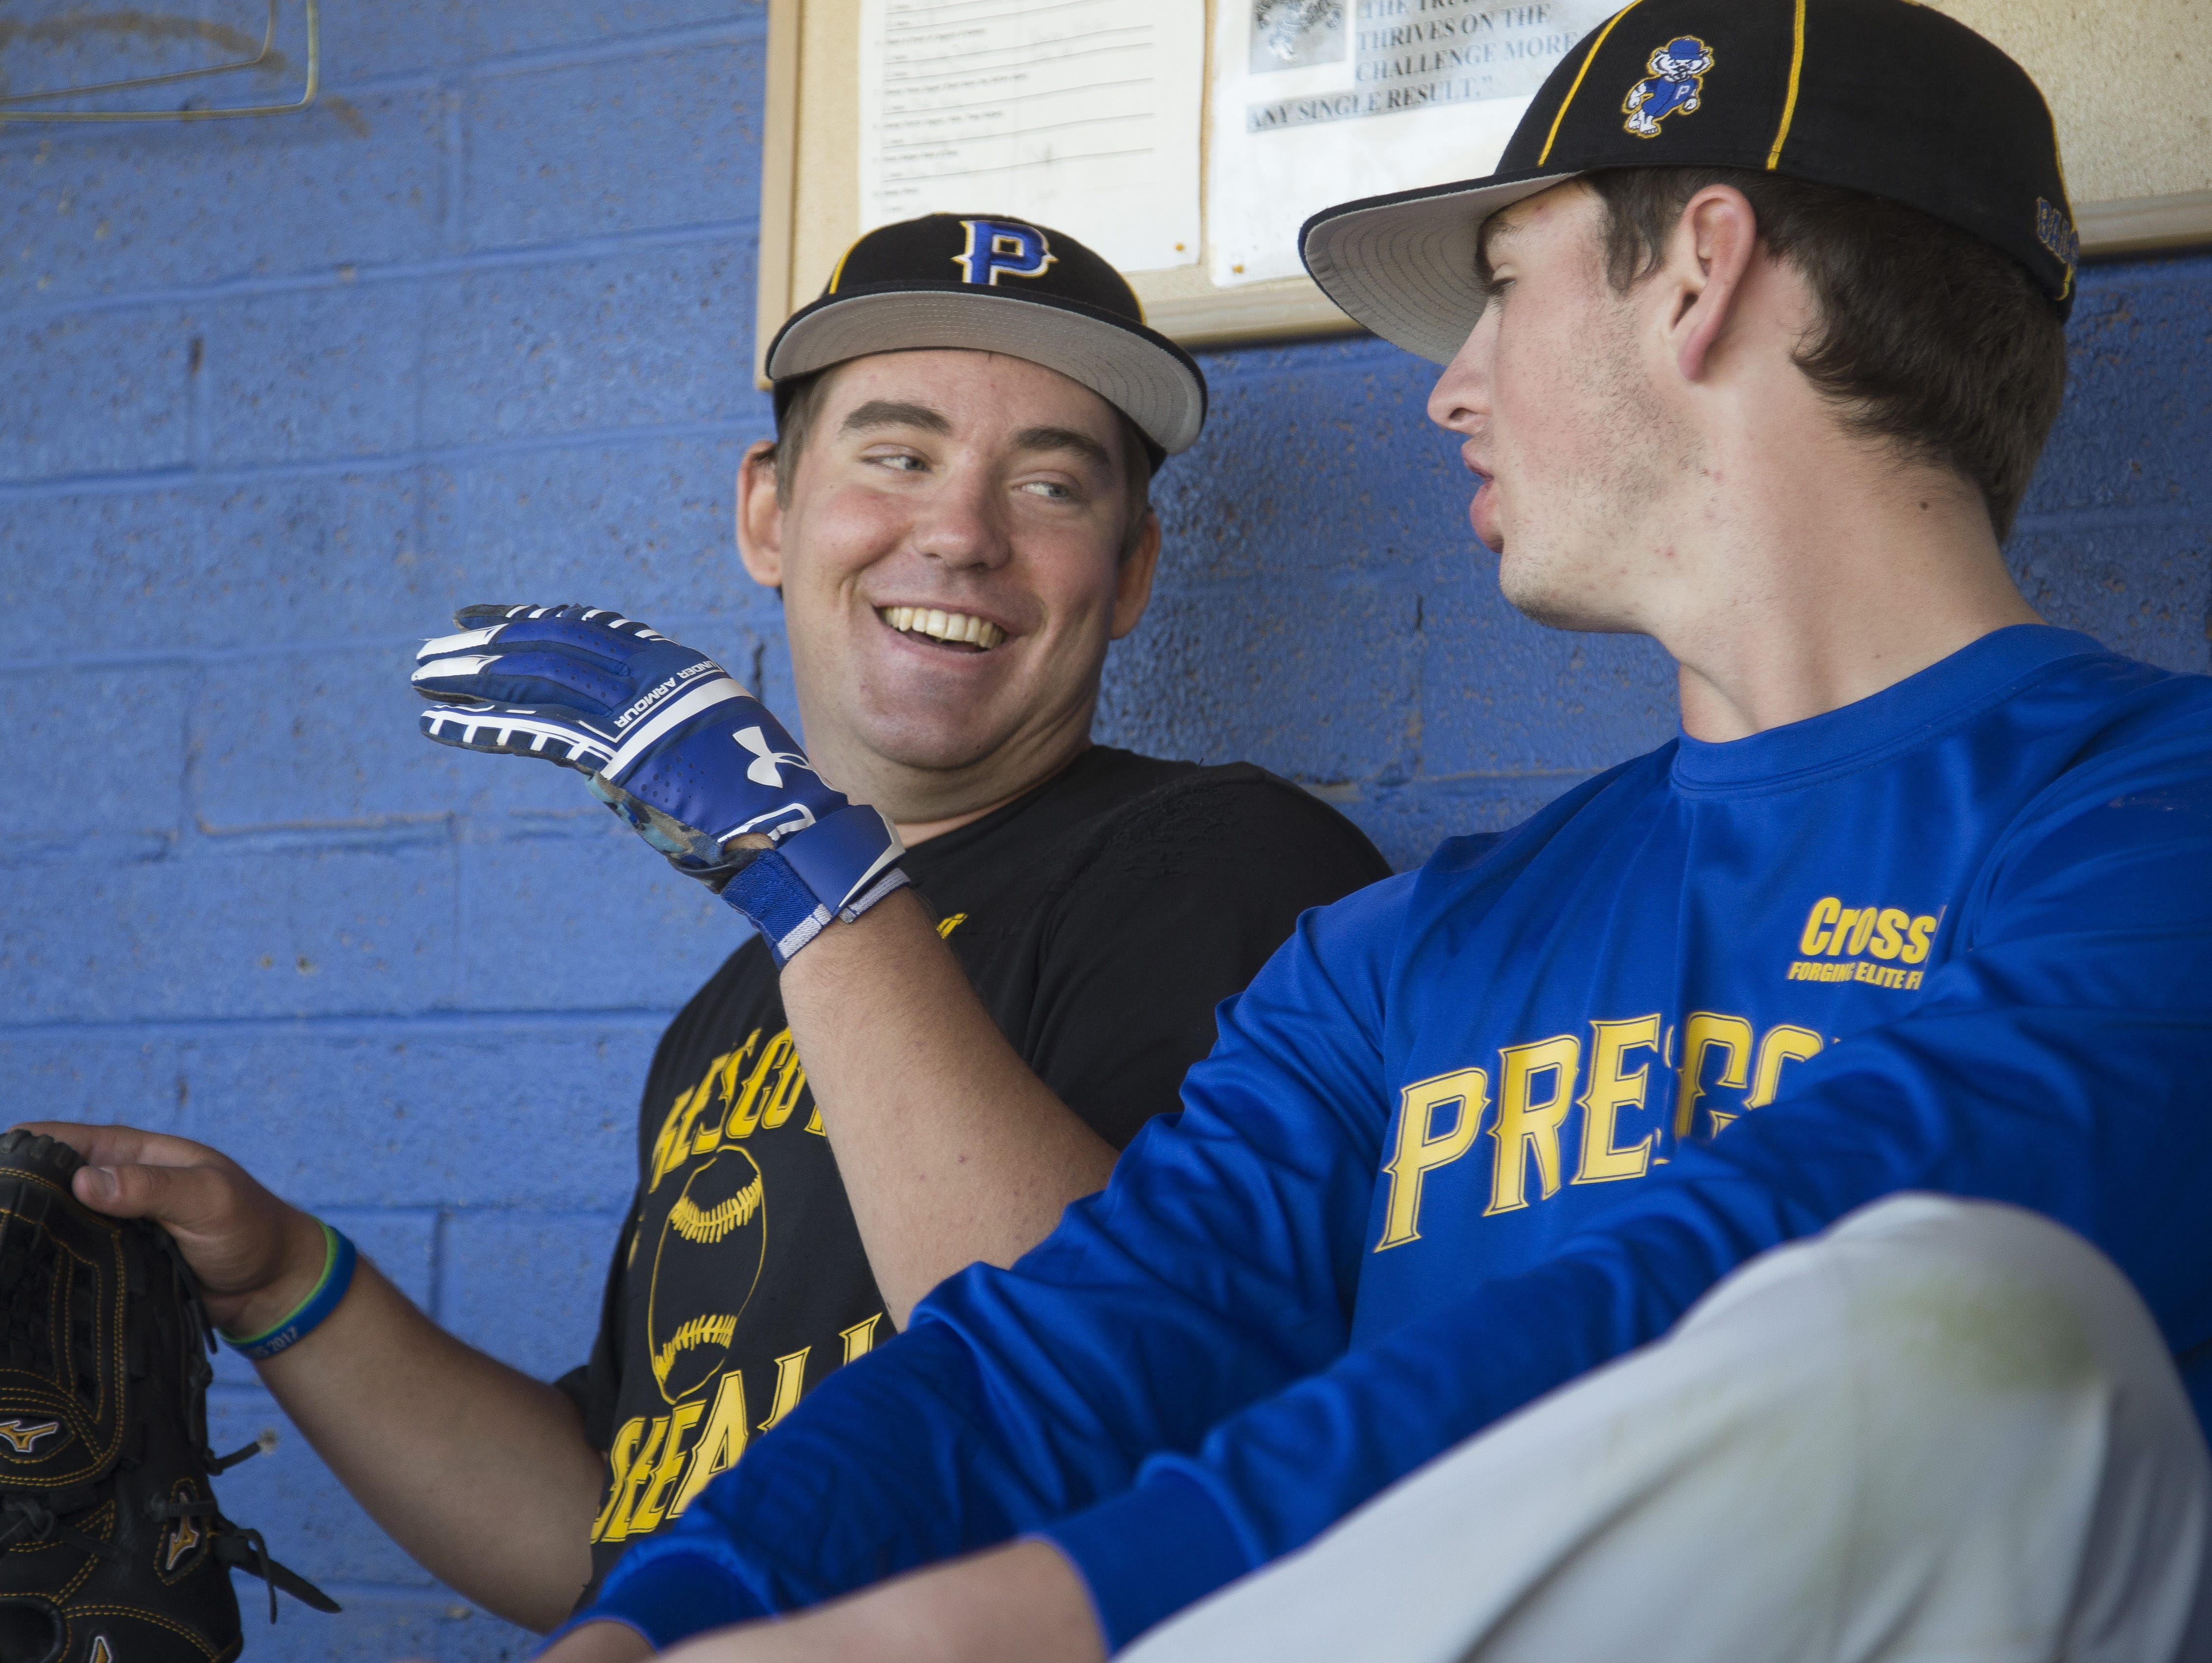 Prescott's Logan Carmick (in black) jokes with teammate Griffin Hays (R) before a baseball practice at Prescott High School on March 24, 2017 in Prescott, Ariz.